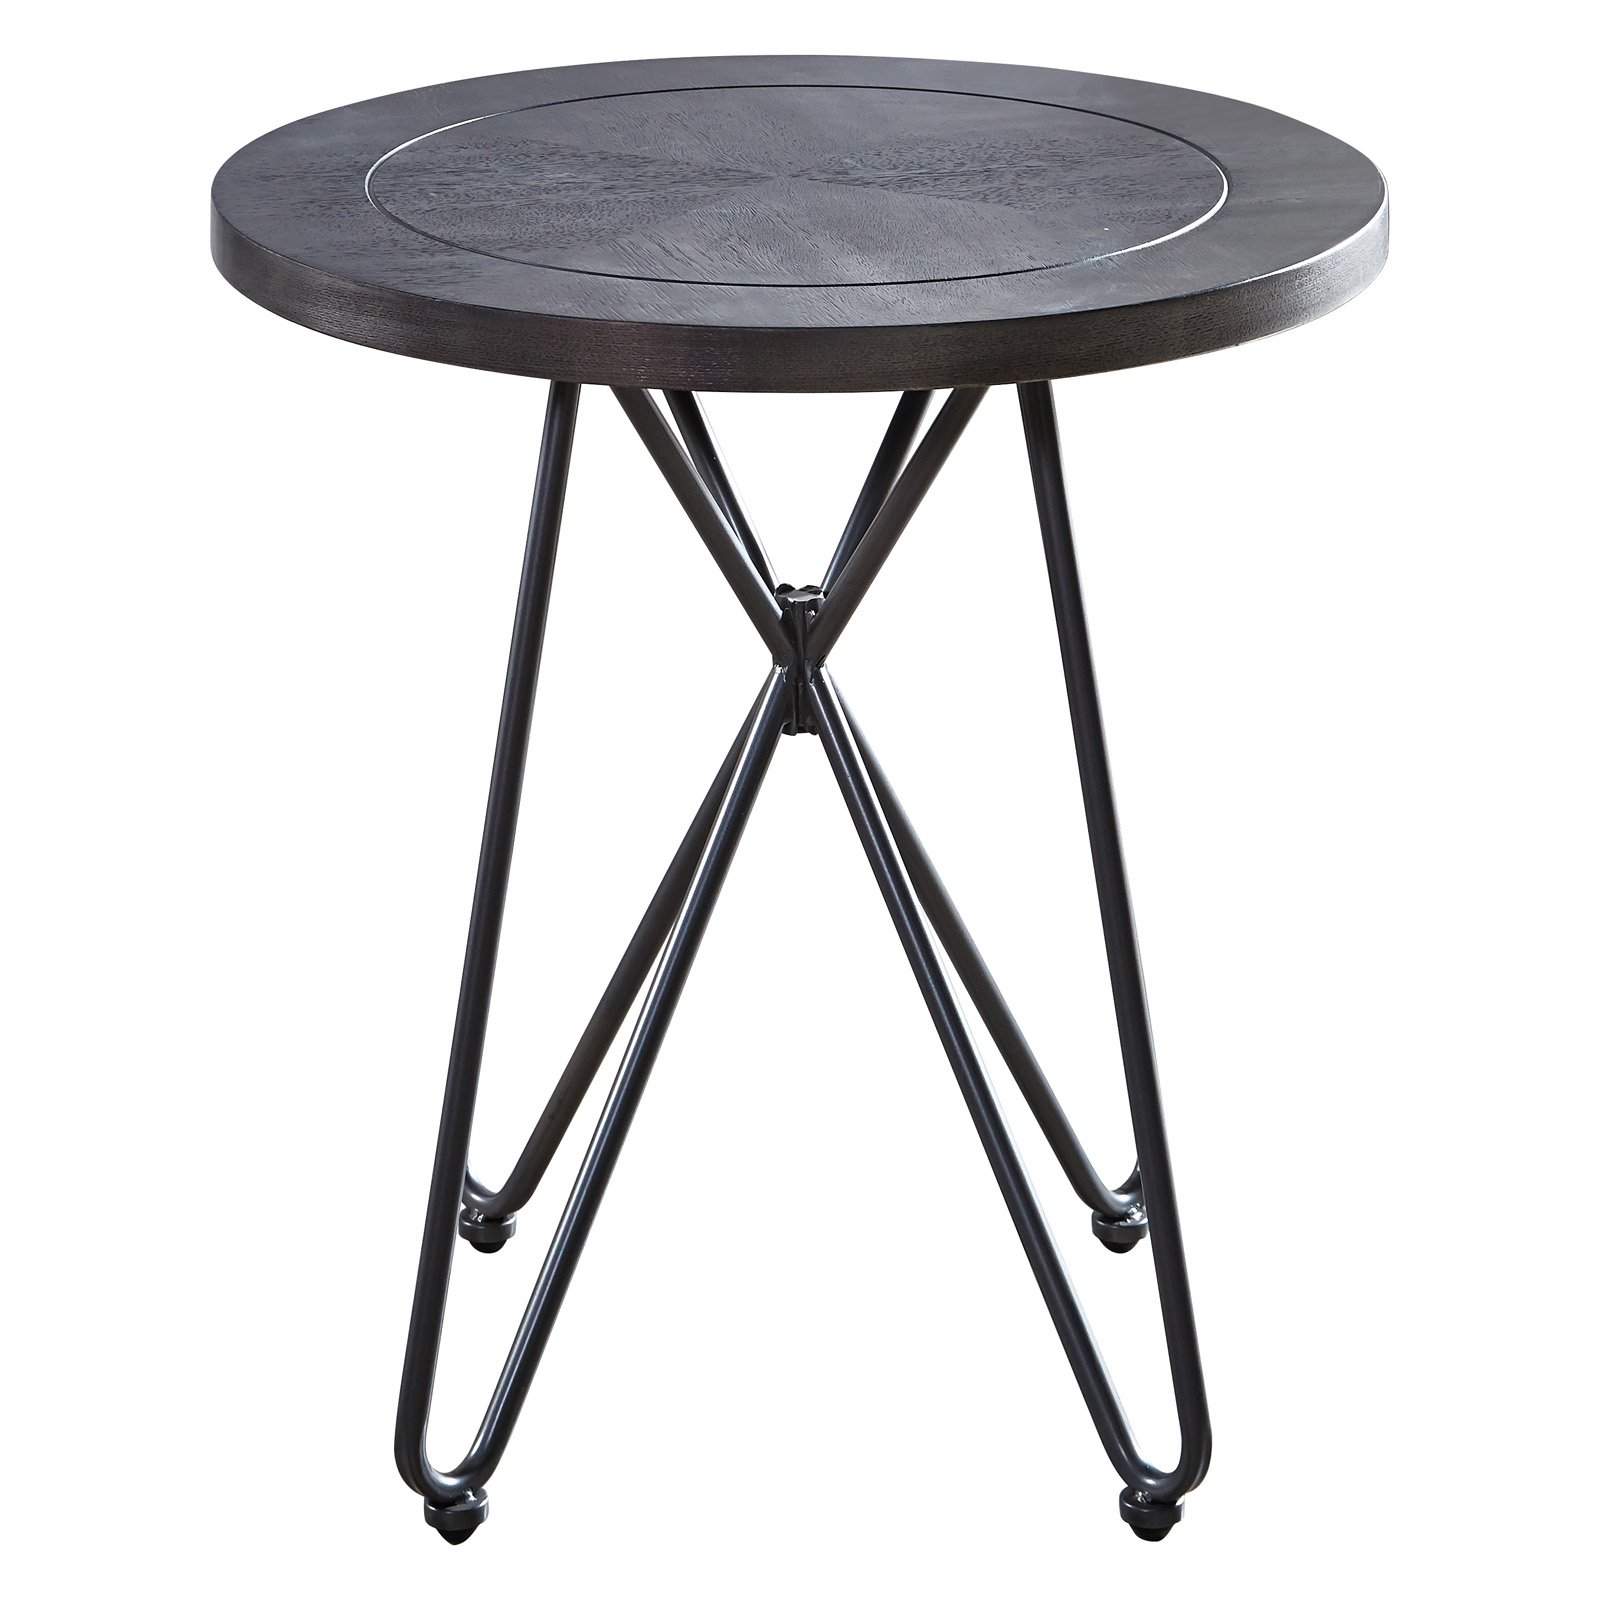 Steve Silver Co. Derek Round End Table